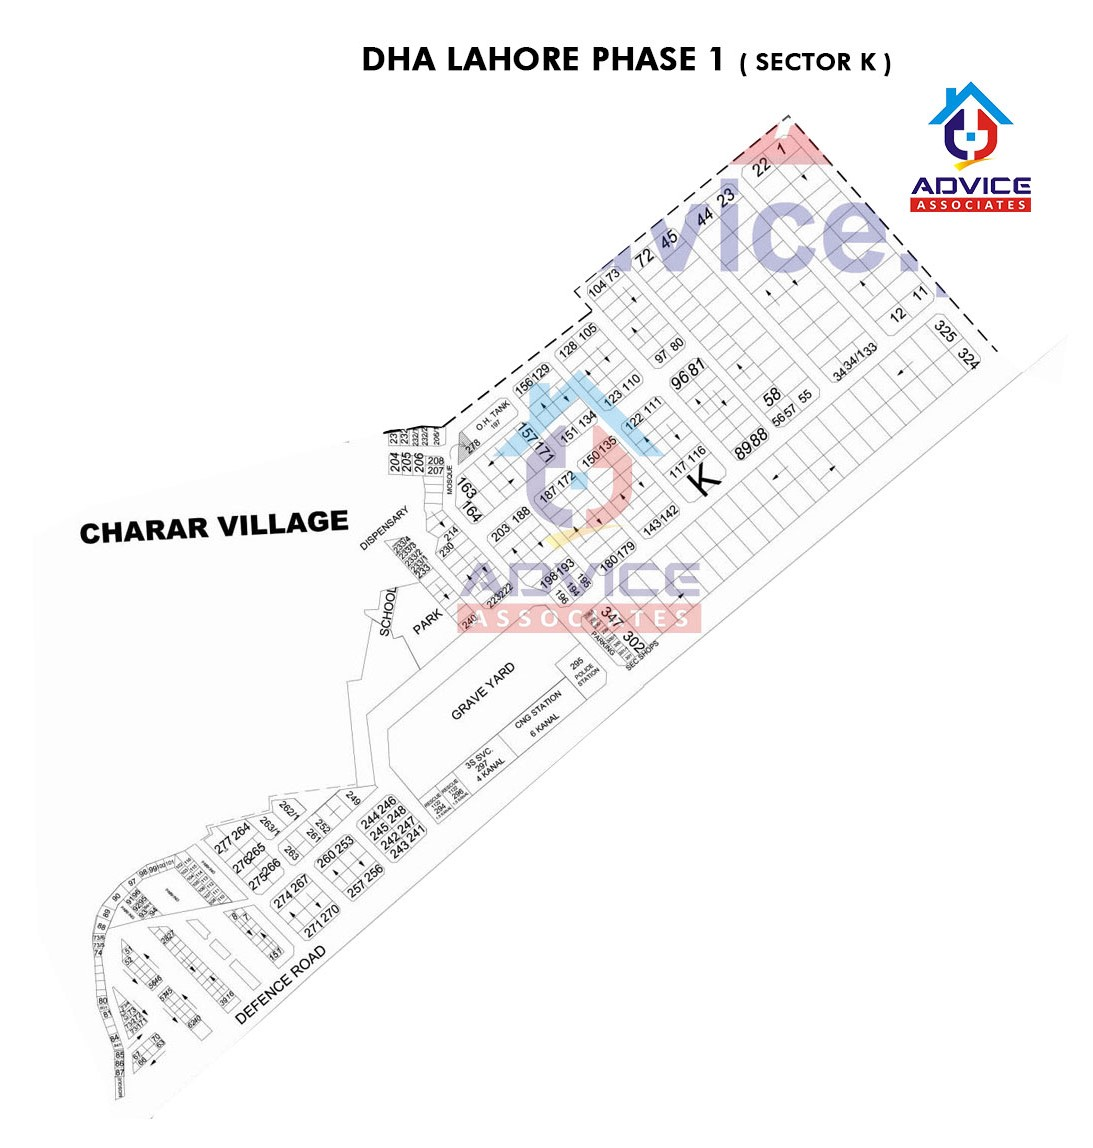 DHA Lahore Phase 1 sector K